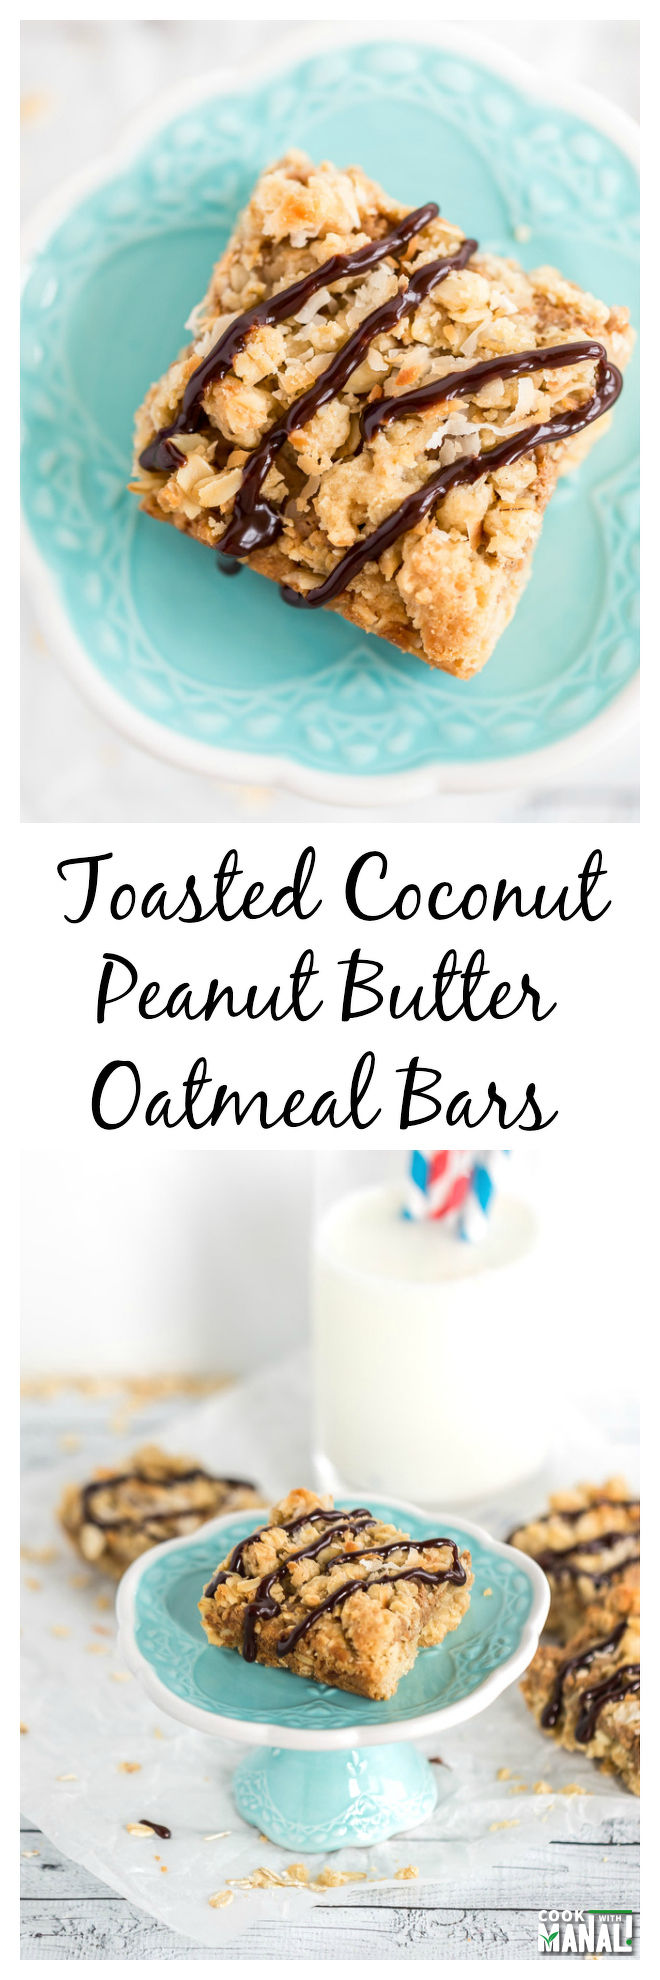 Coconut Peanut Butter Oatmeal Bars Collage